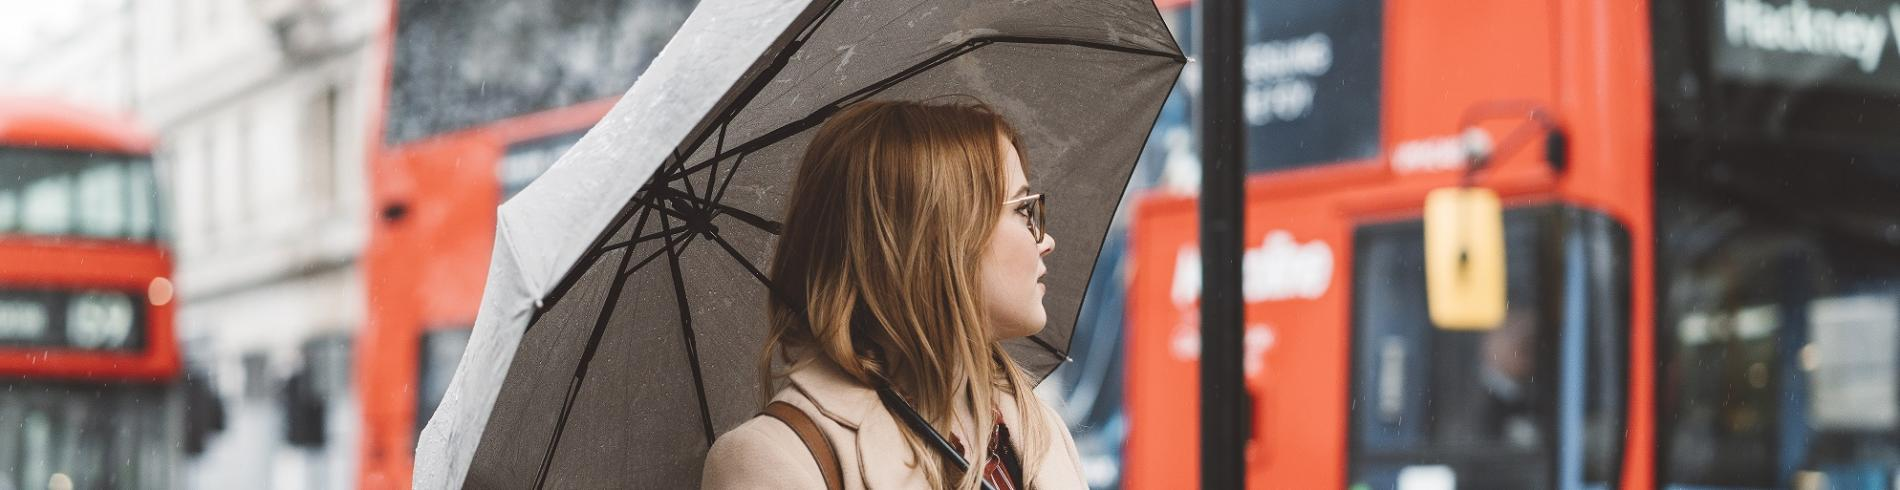 Girl with umbrella in London